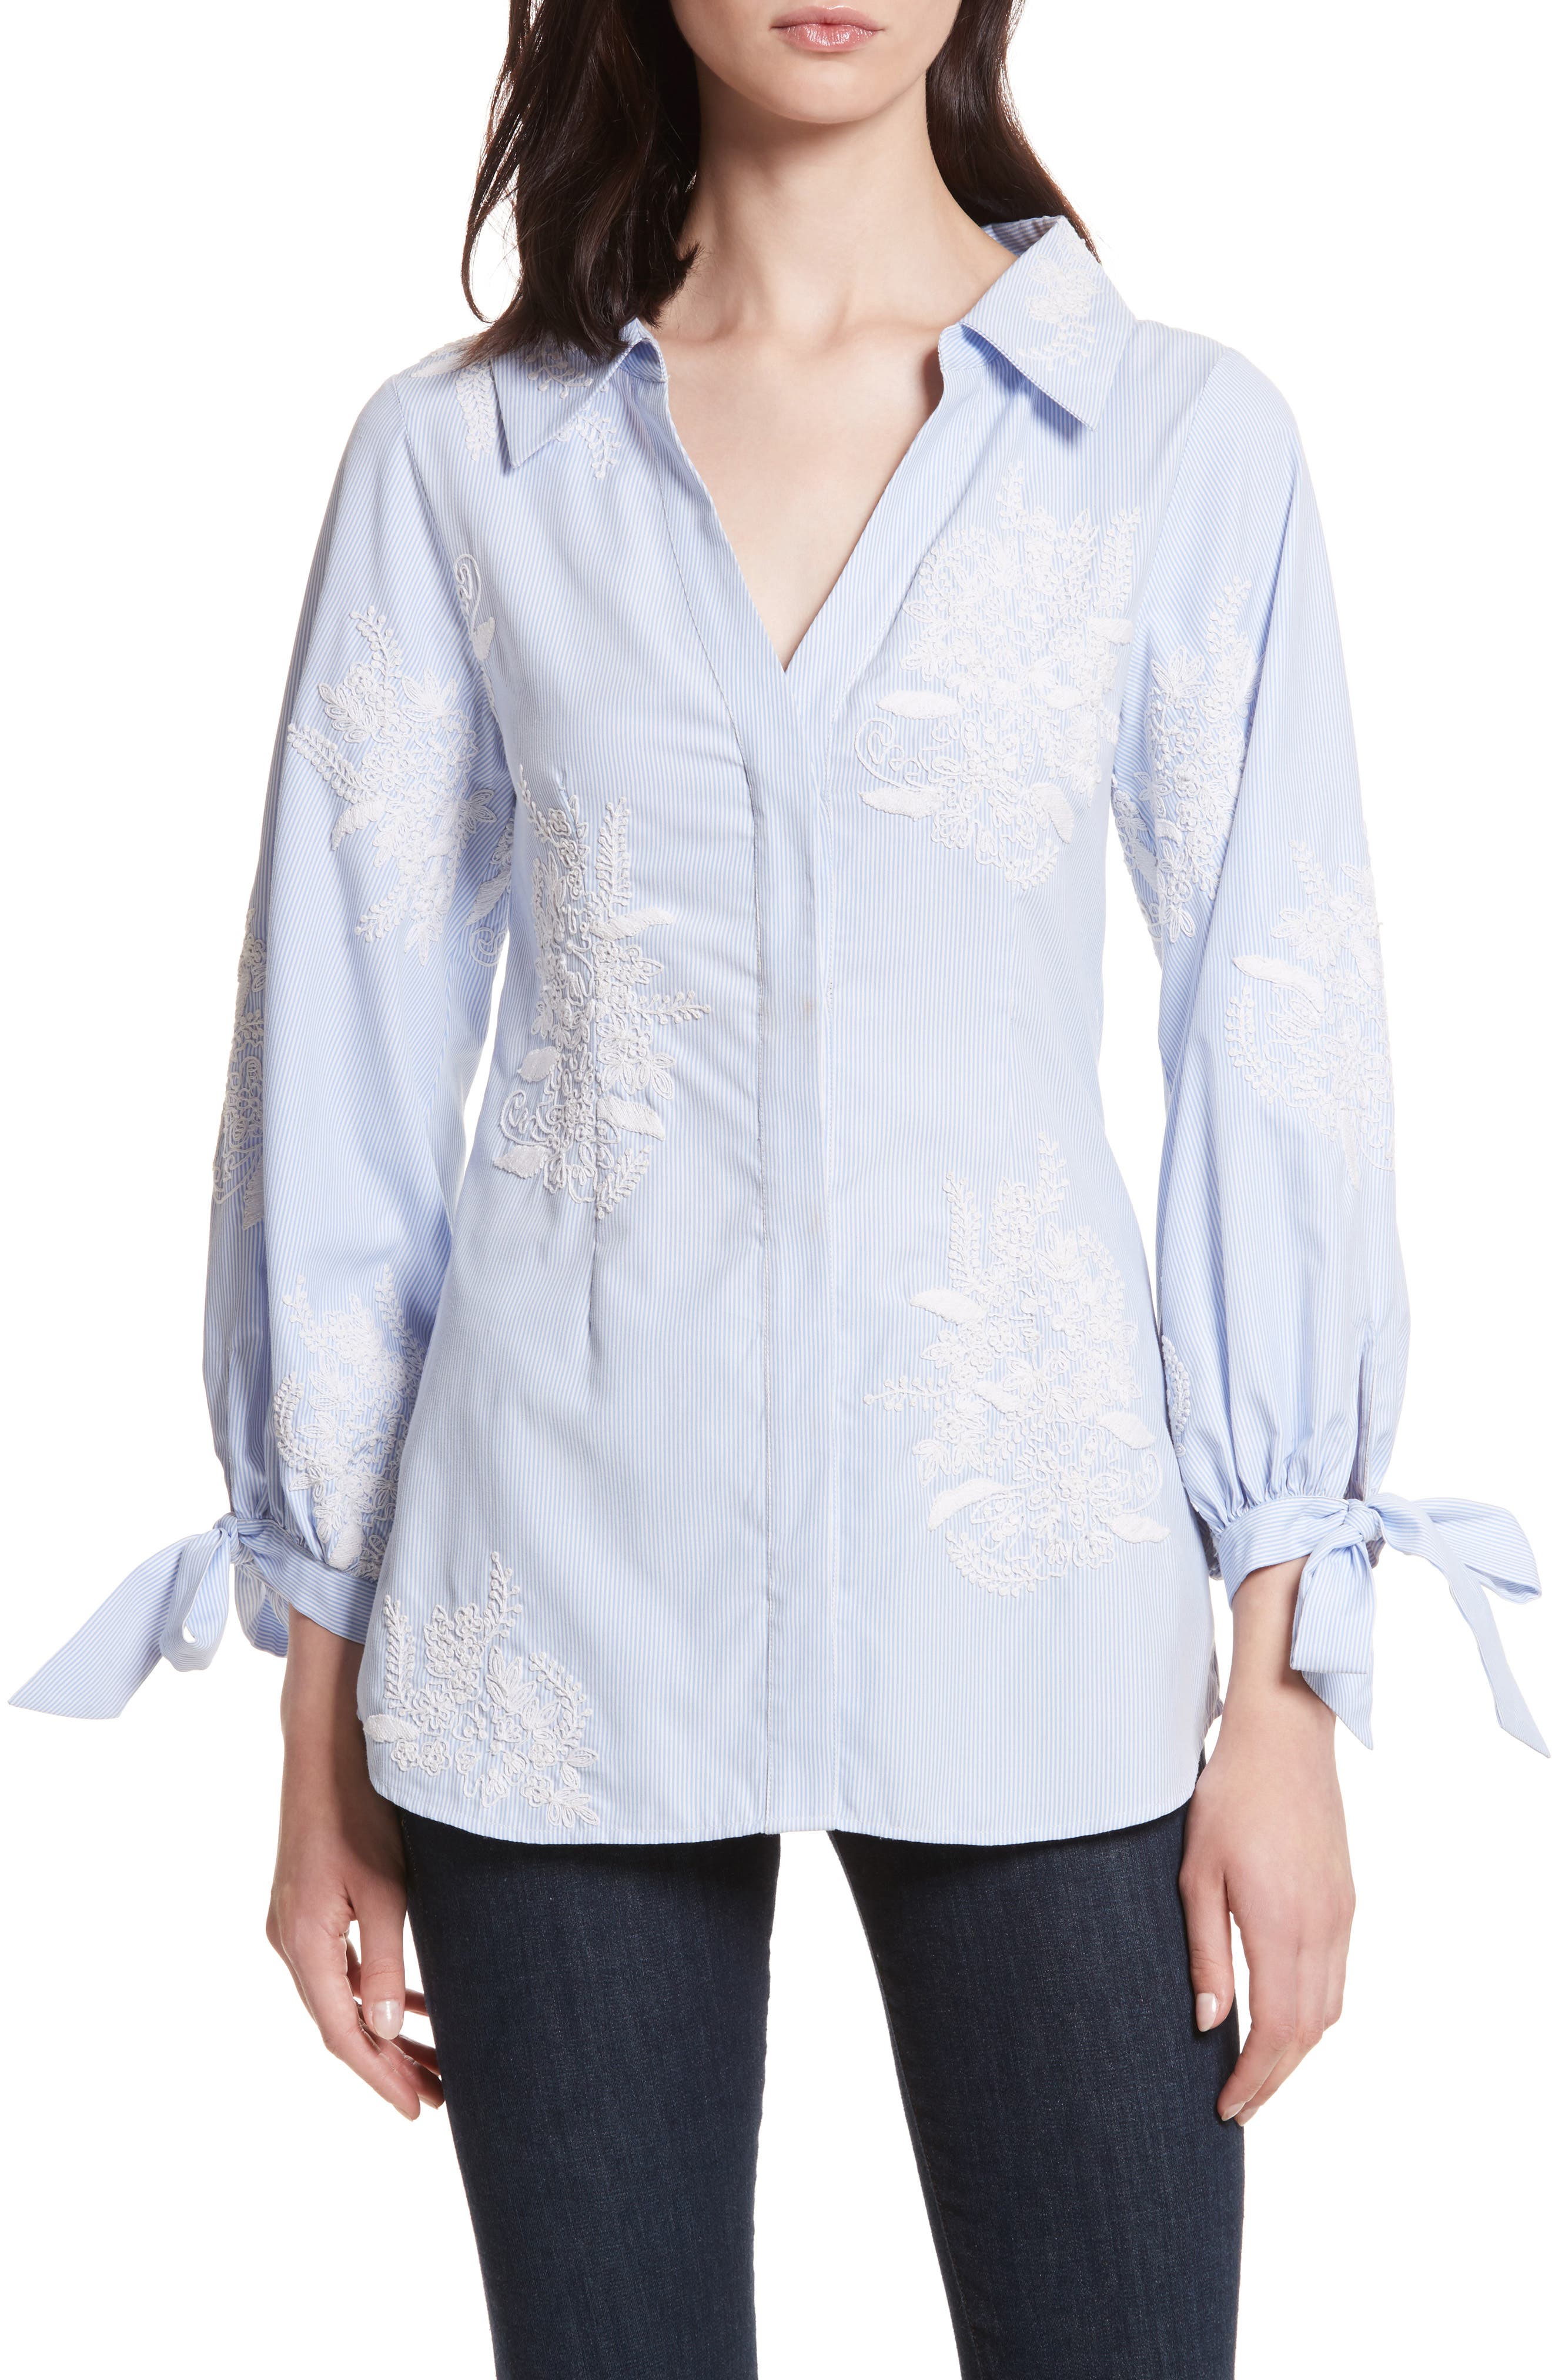 Toro Embroidered Tie Sleeve Blouse,                             Main thumbnail 1, color,                             422